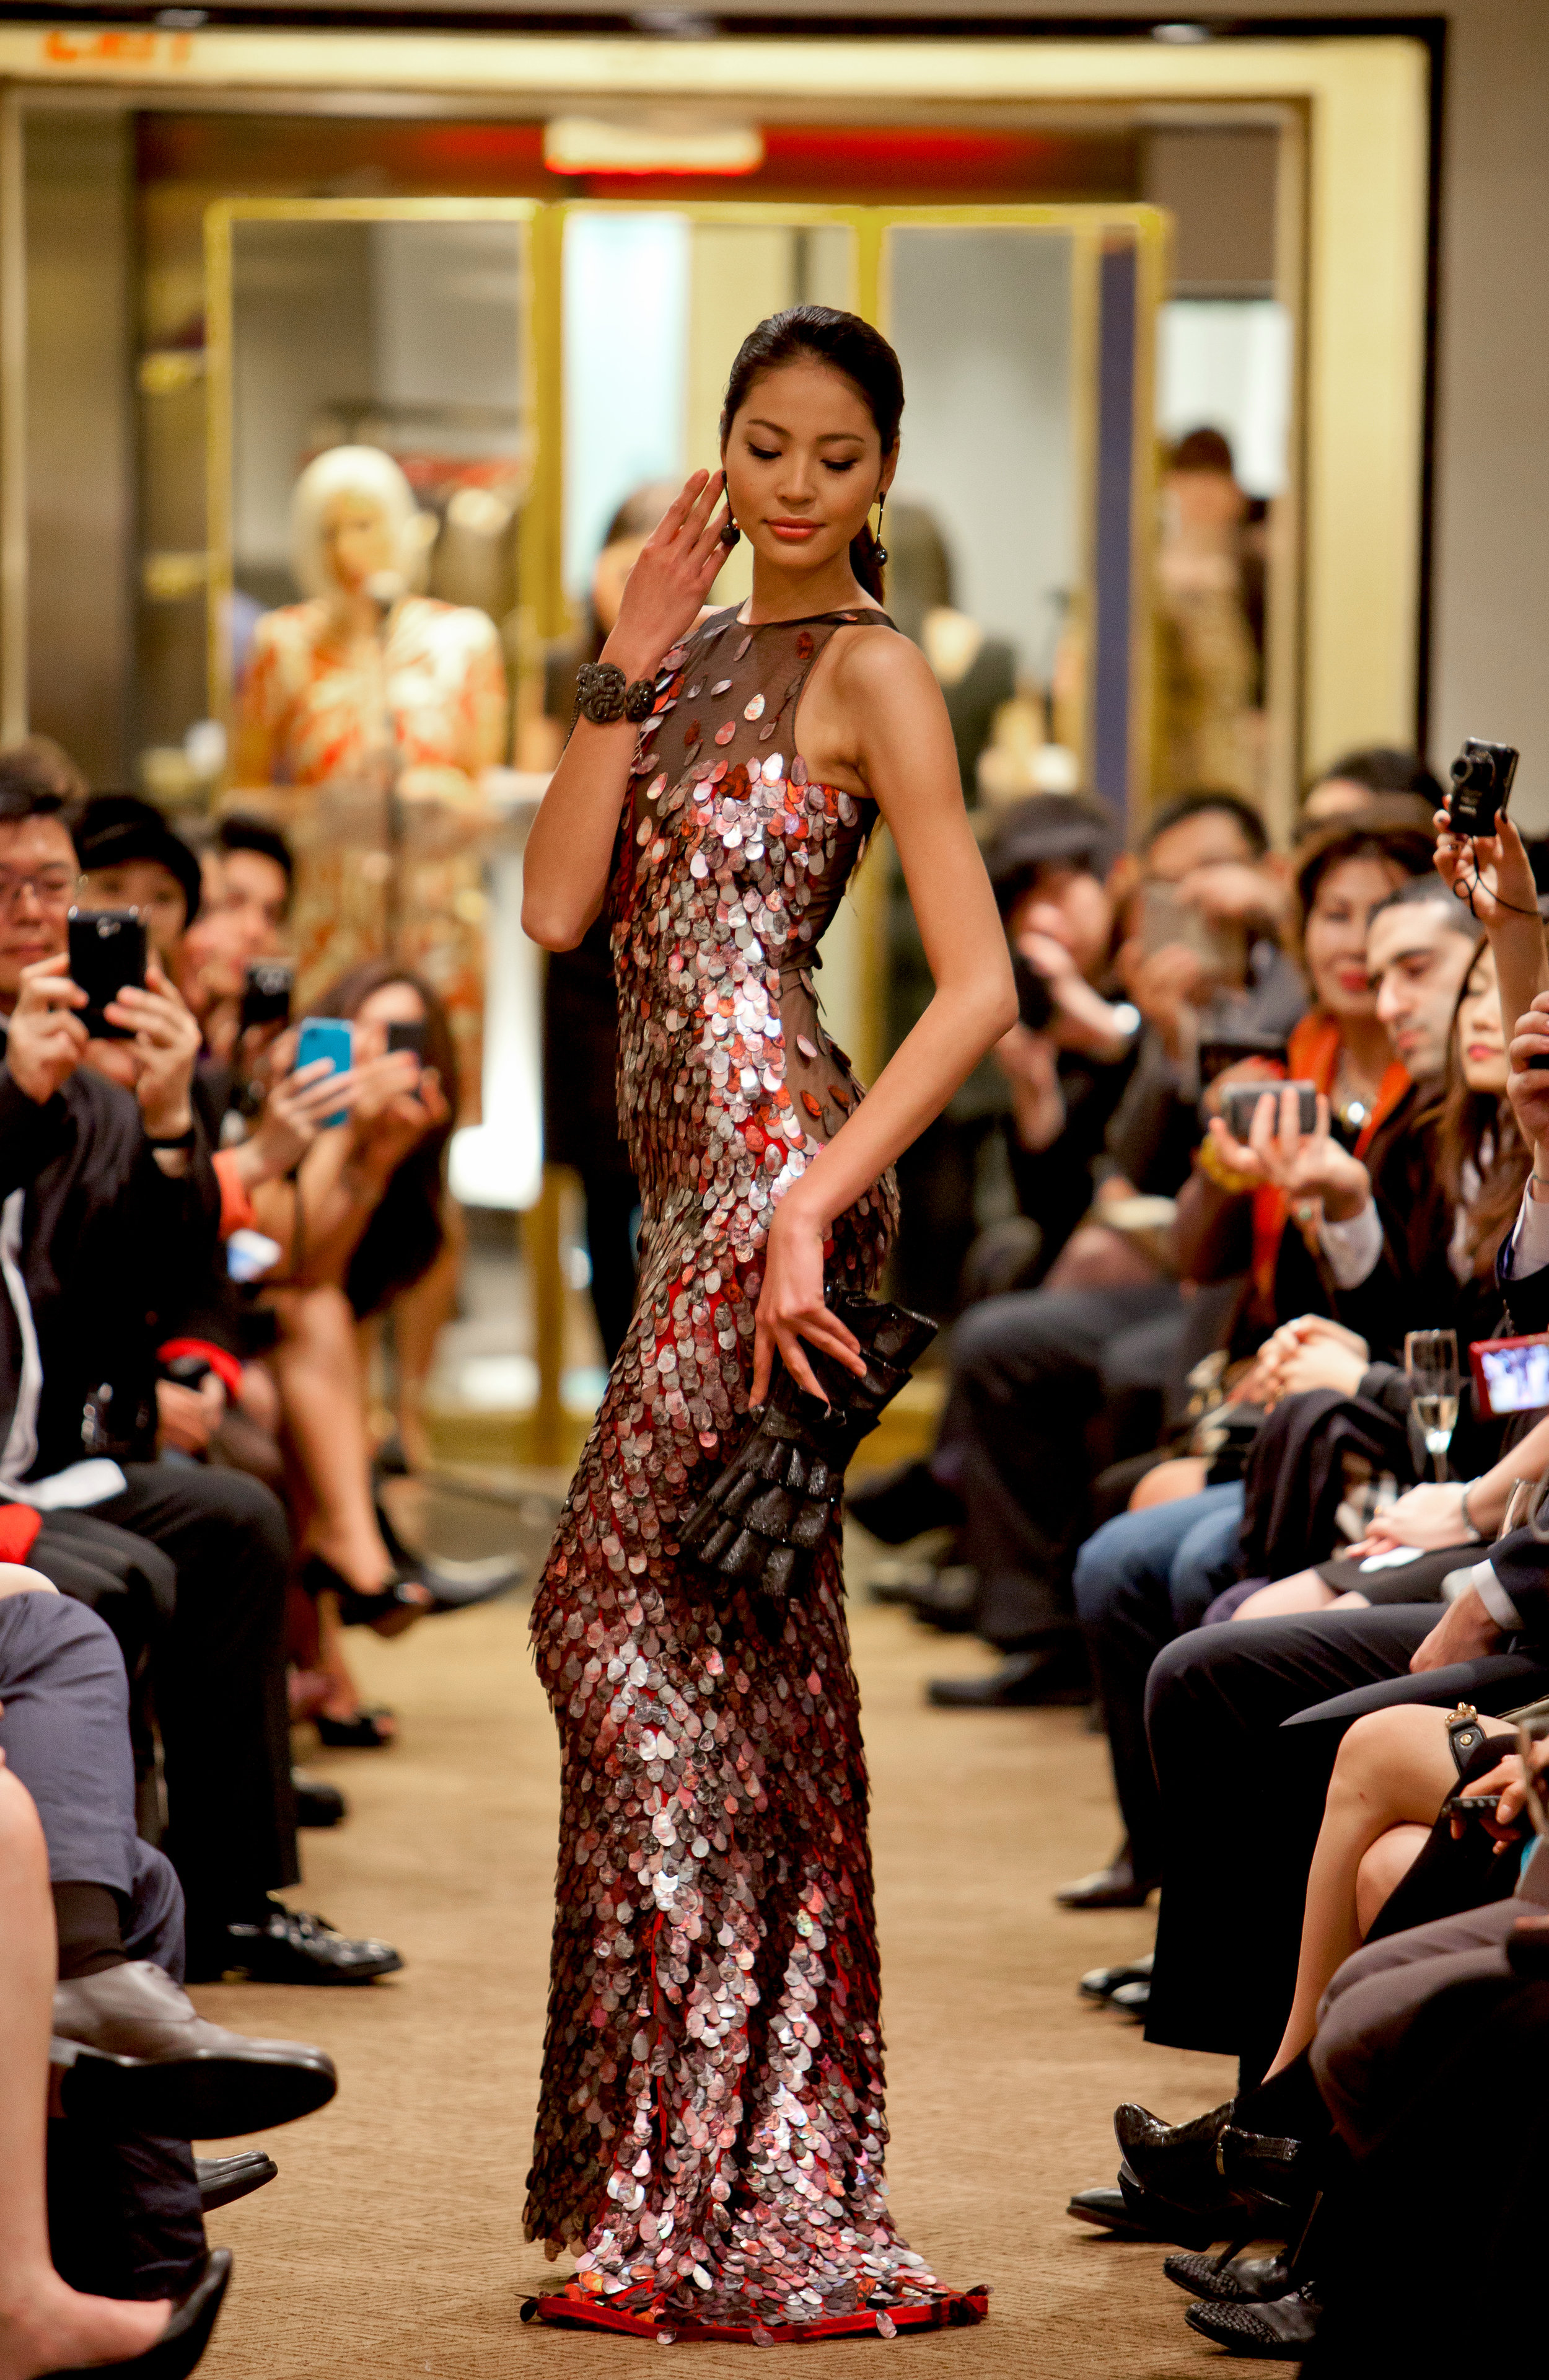 Luo Zi Lin (Roseline Luo) Miss Universe China - Affinity China - Dragon Week 2012